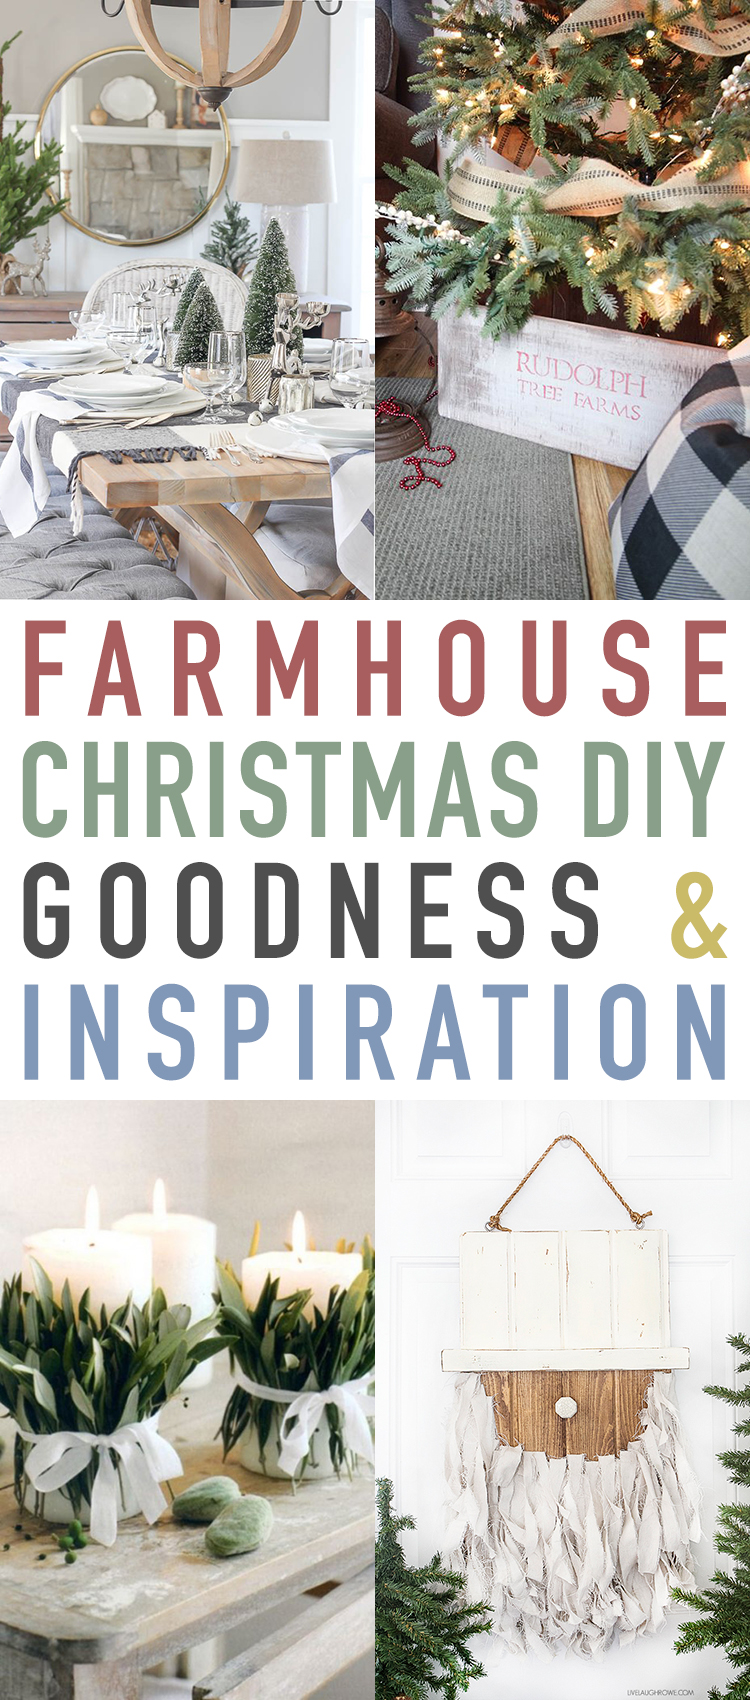 Farmhouse Christmas DIY Goodness and Inspiration